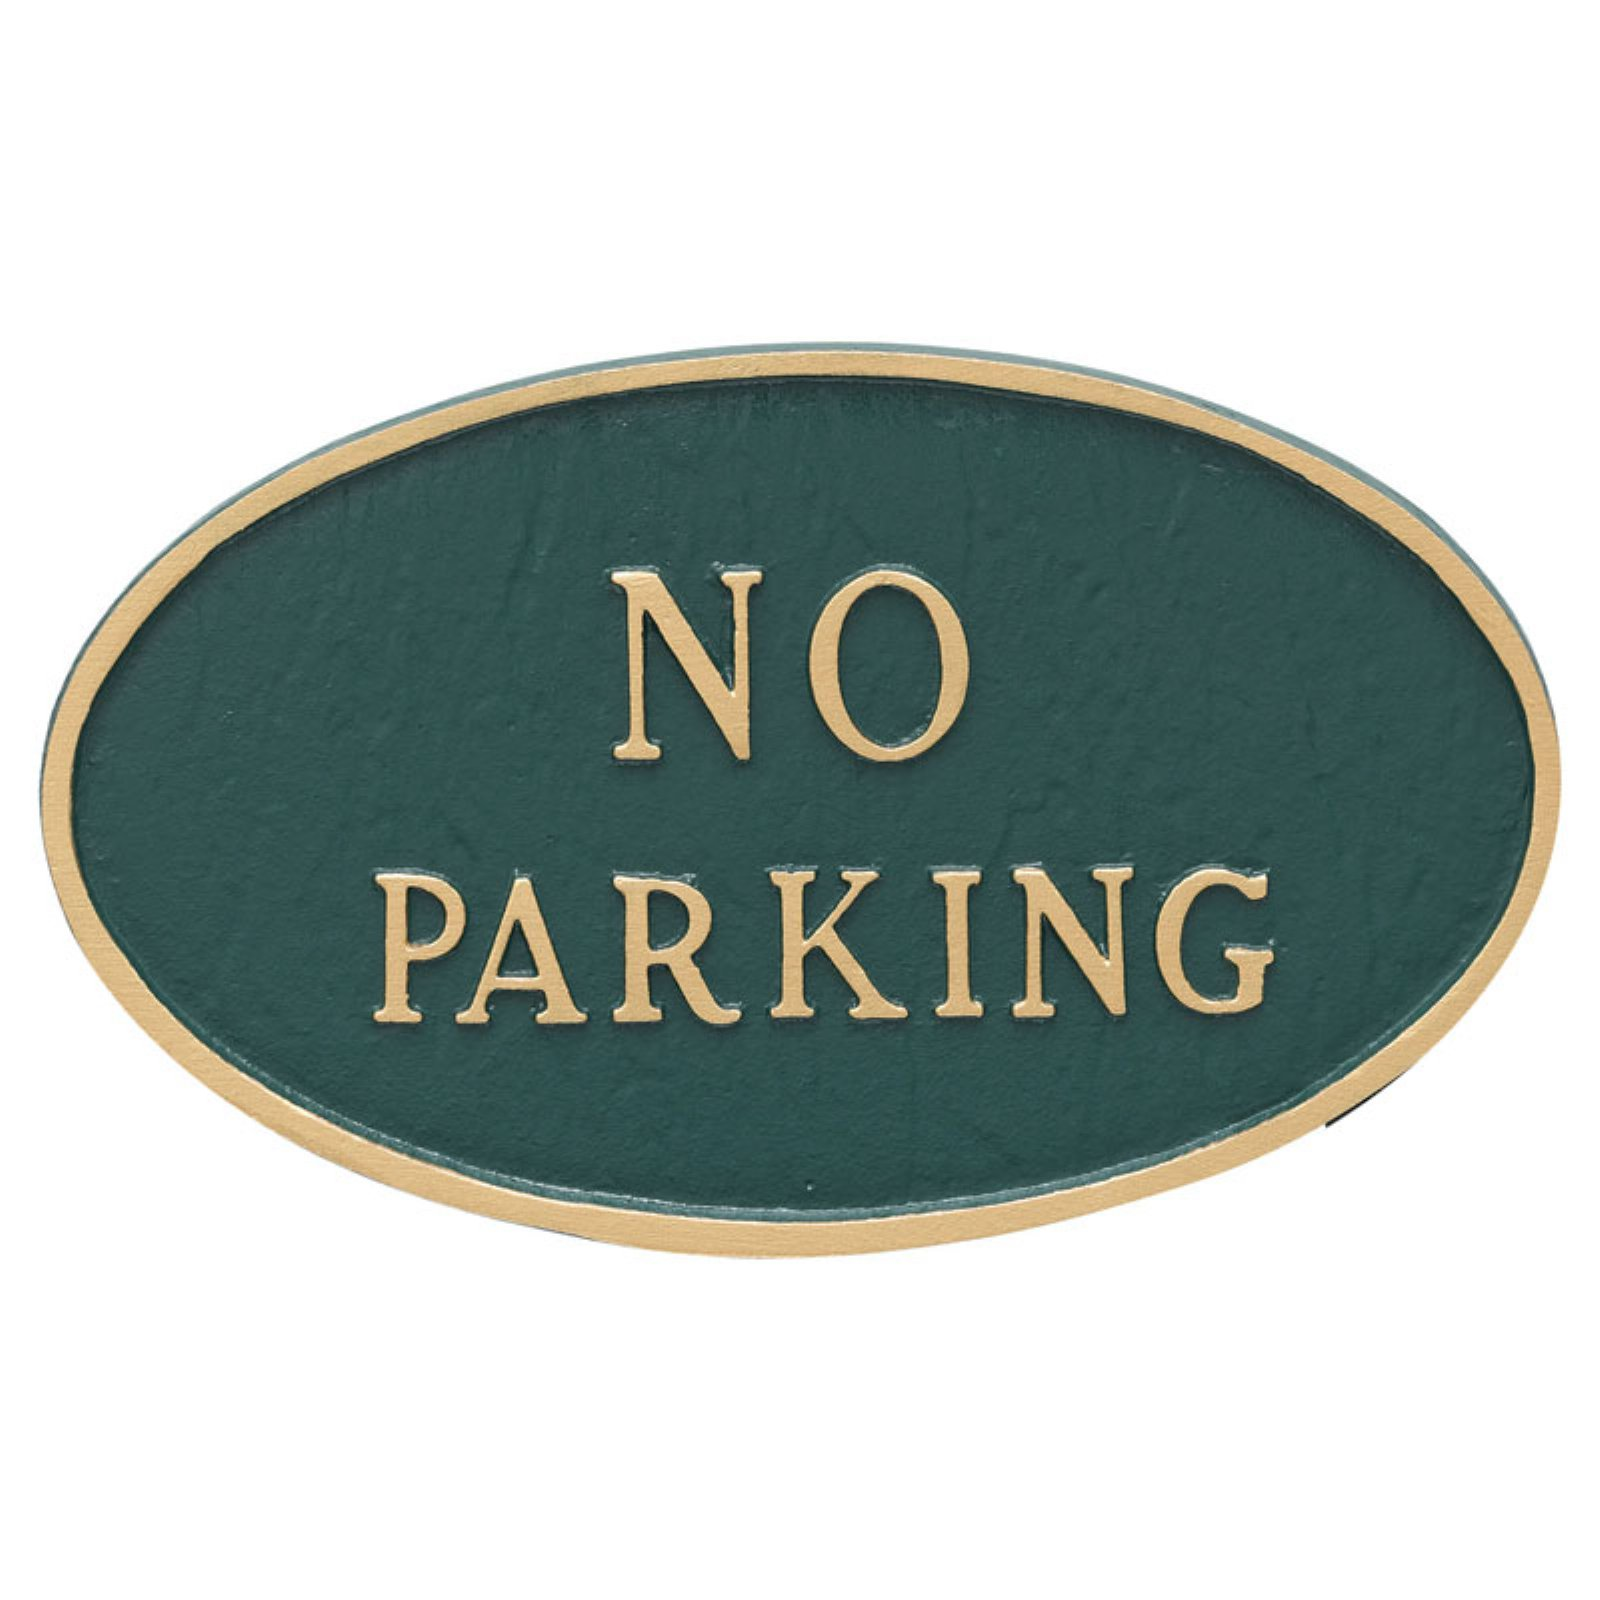 Montague Metal Products No Parking Oval Wall Plaque